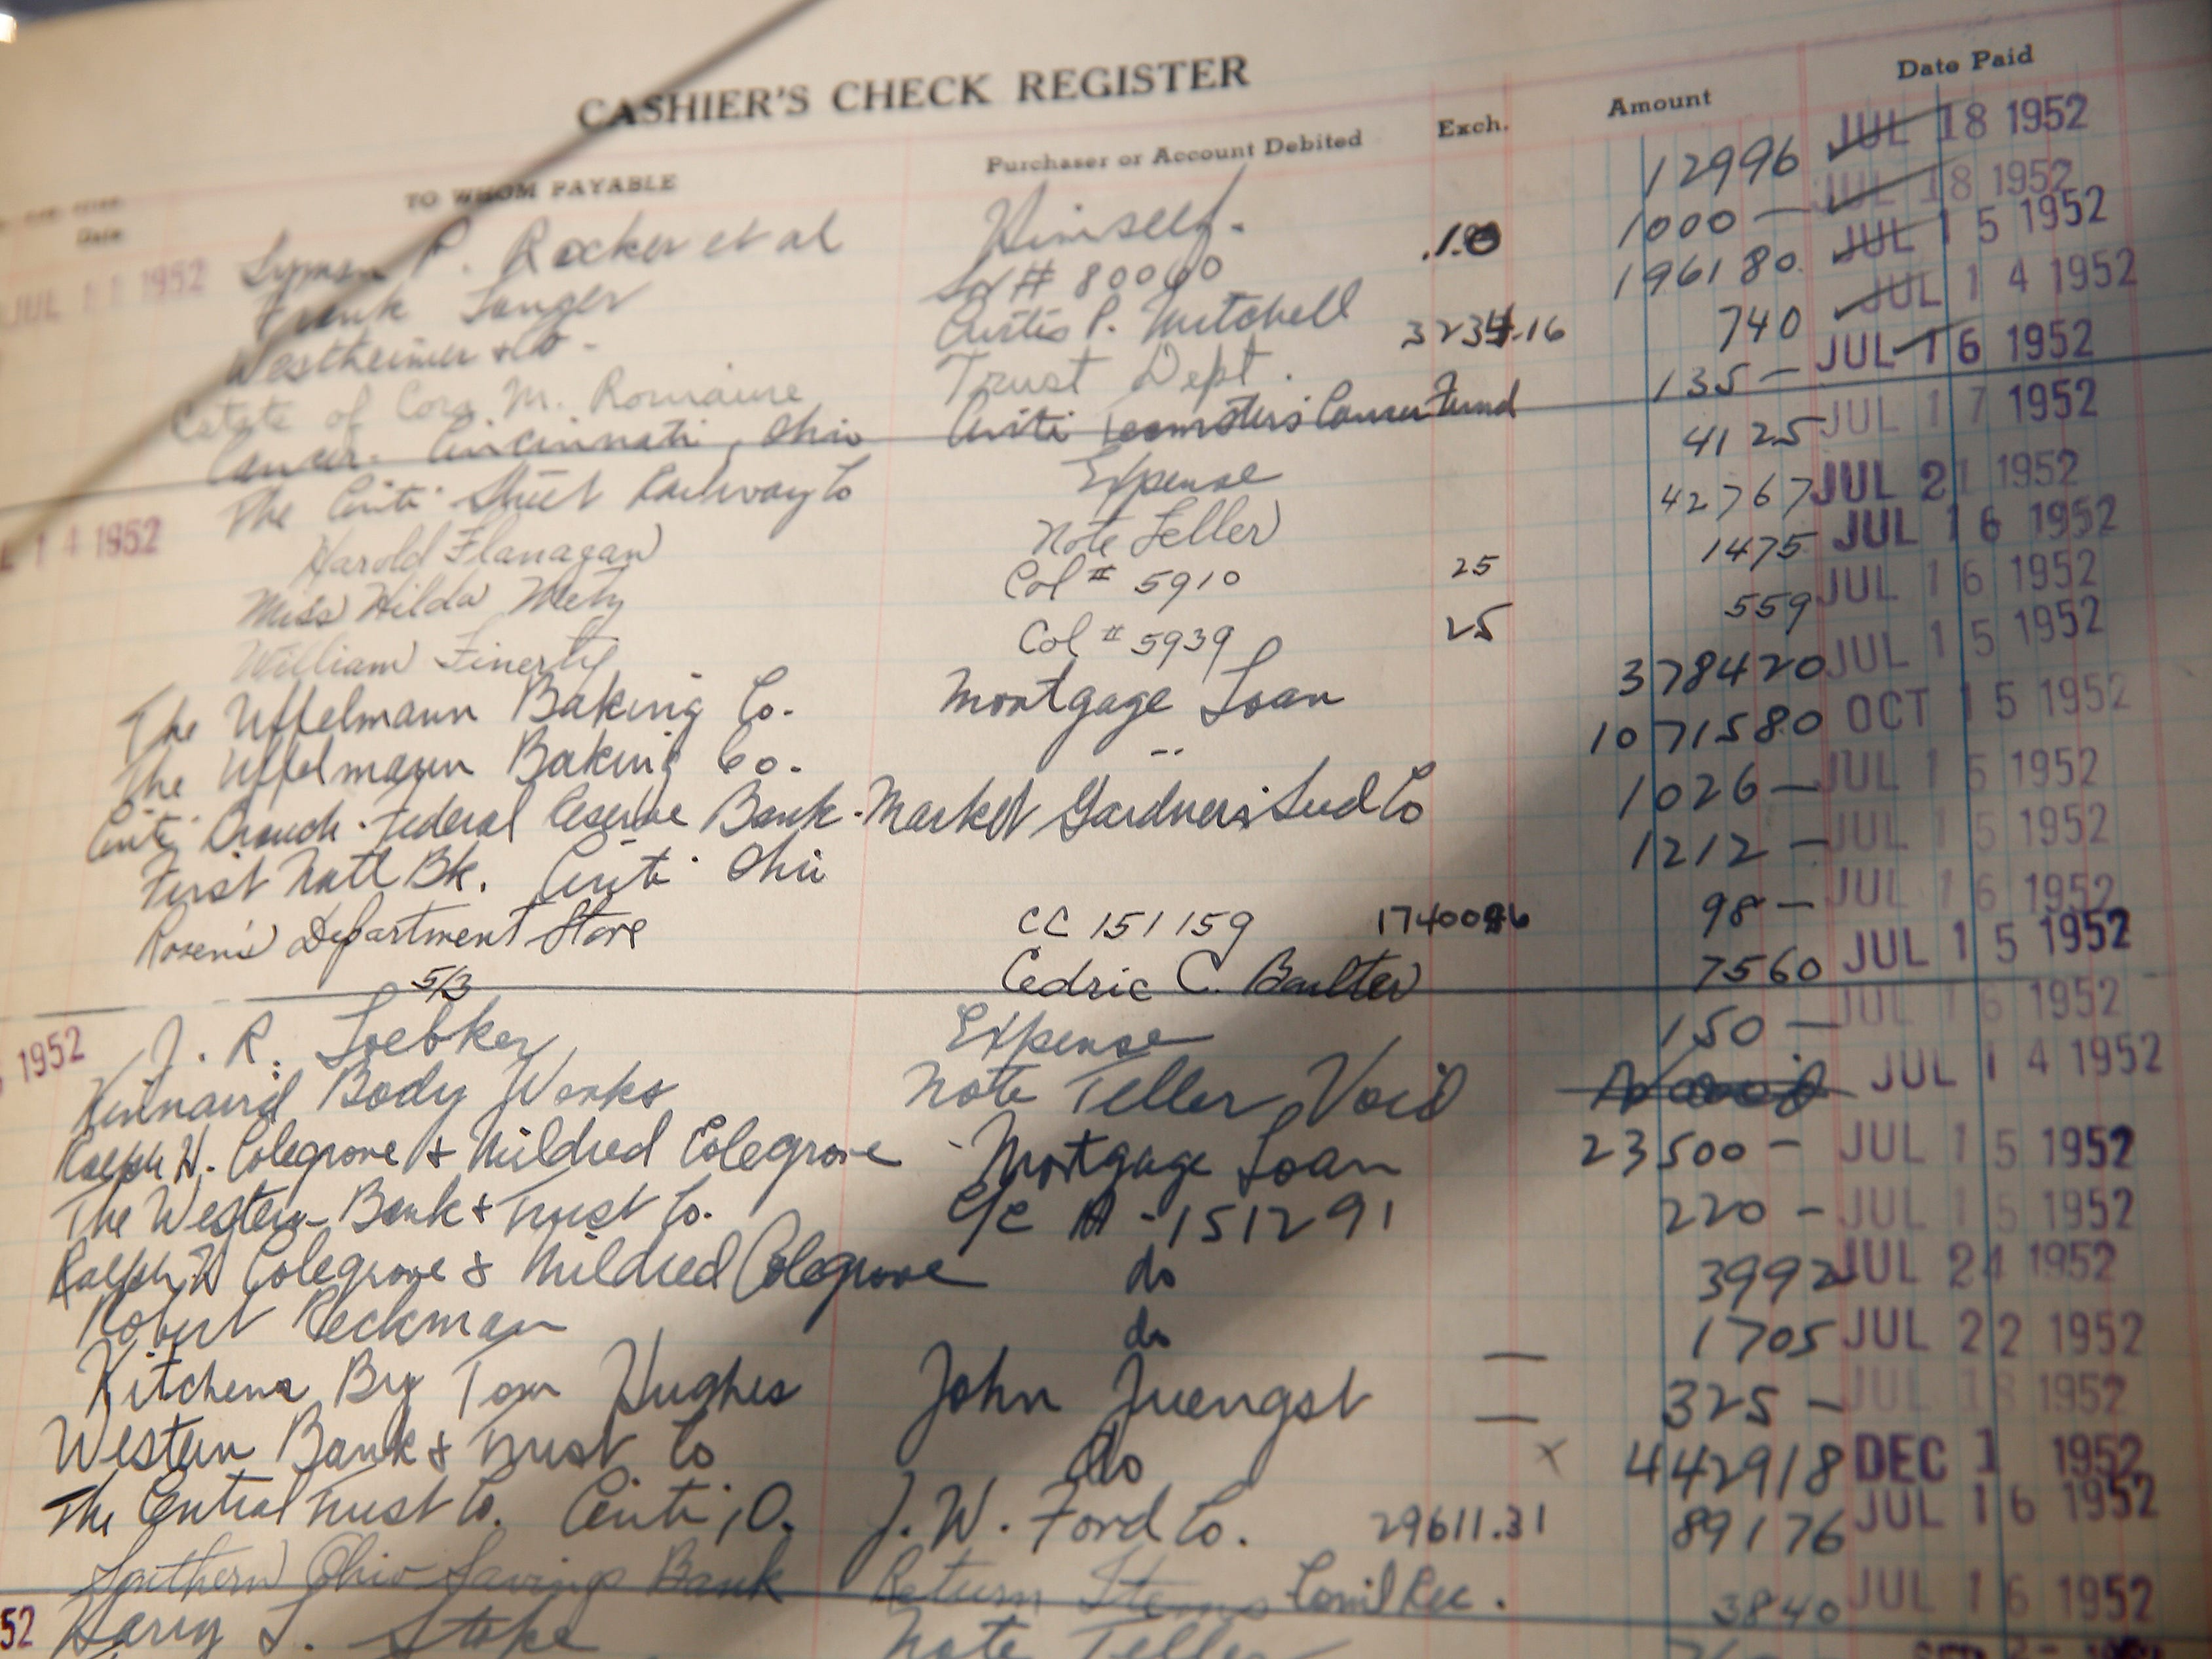 Fifth Third Bank museum opened Wednesday, March 13, 2019 their headquarters at Fountain Square. This cashier's check register ledger was used for bookkeeping and accounting purposed through the early 1960's. This ledger is from The Western German Bank that was located on Vine Street. 